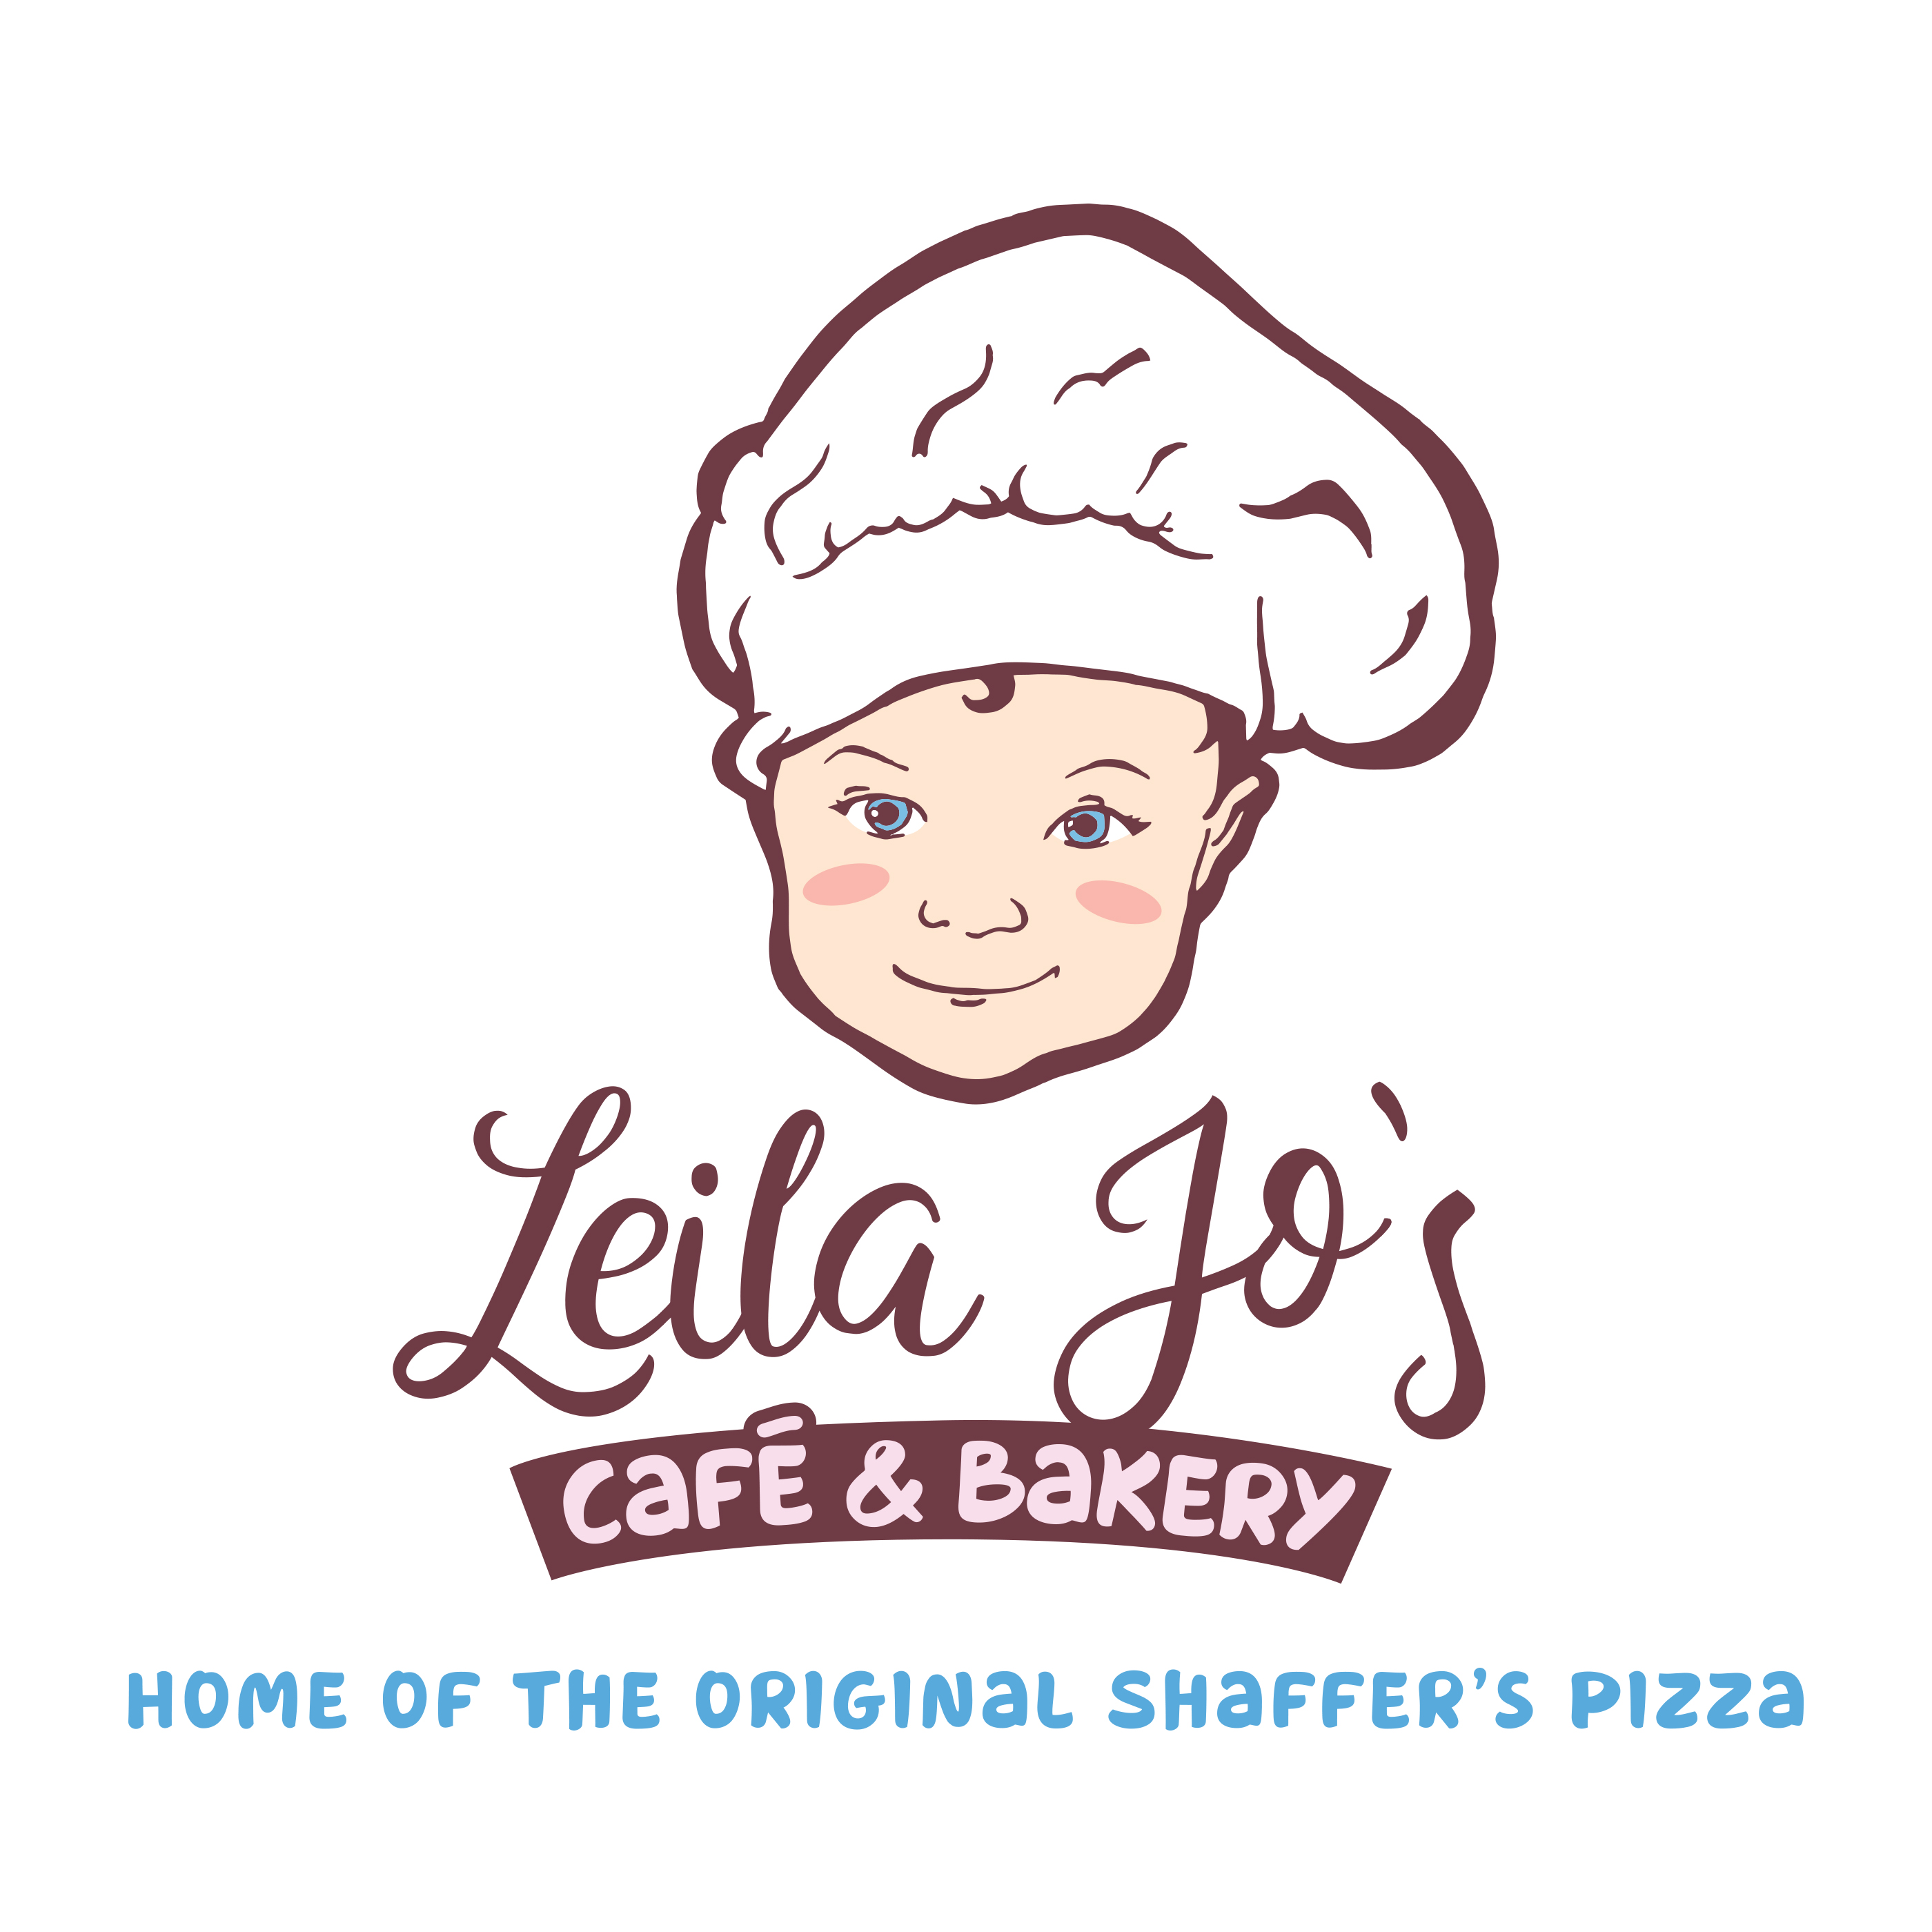 Leila Jo's Cafe & Bakery